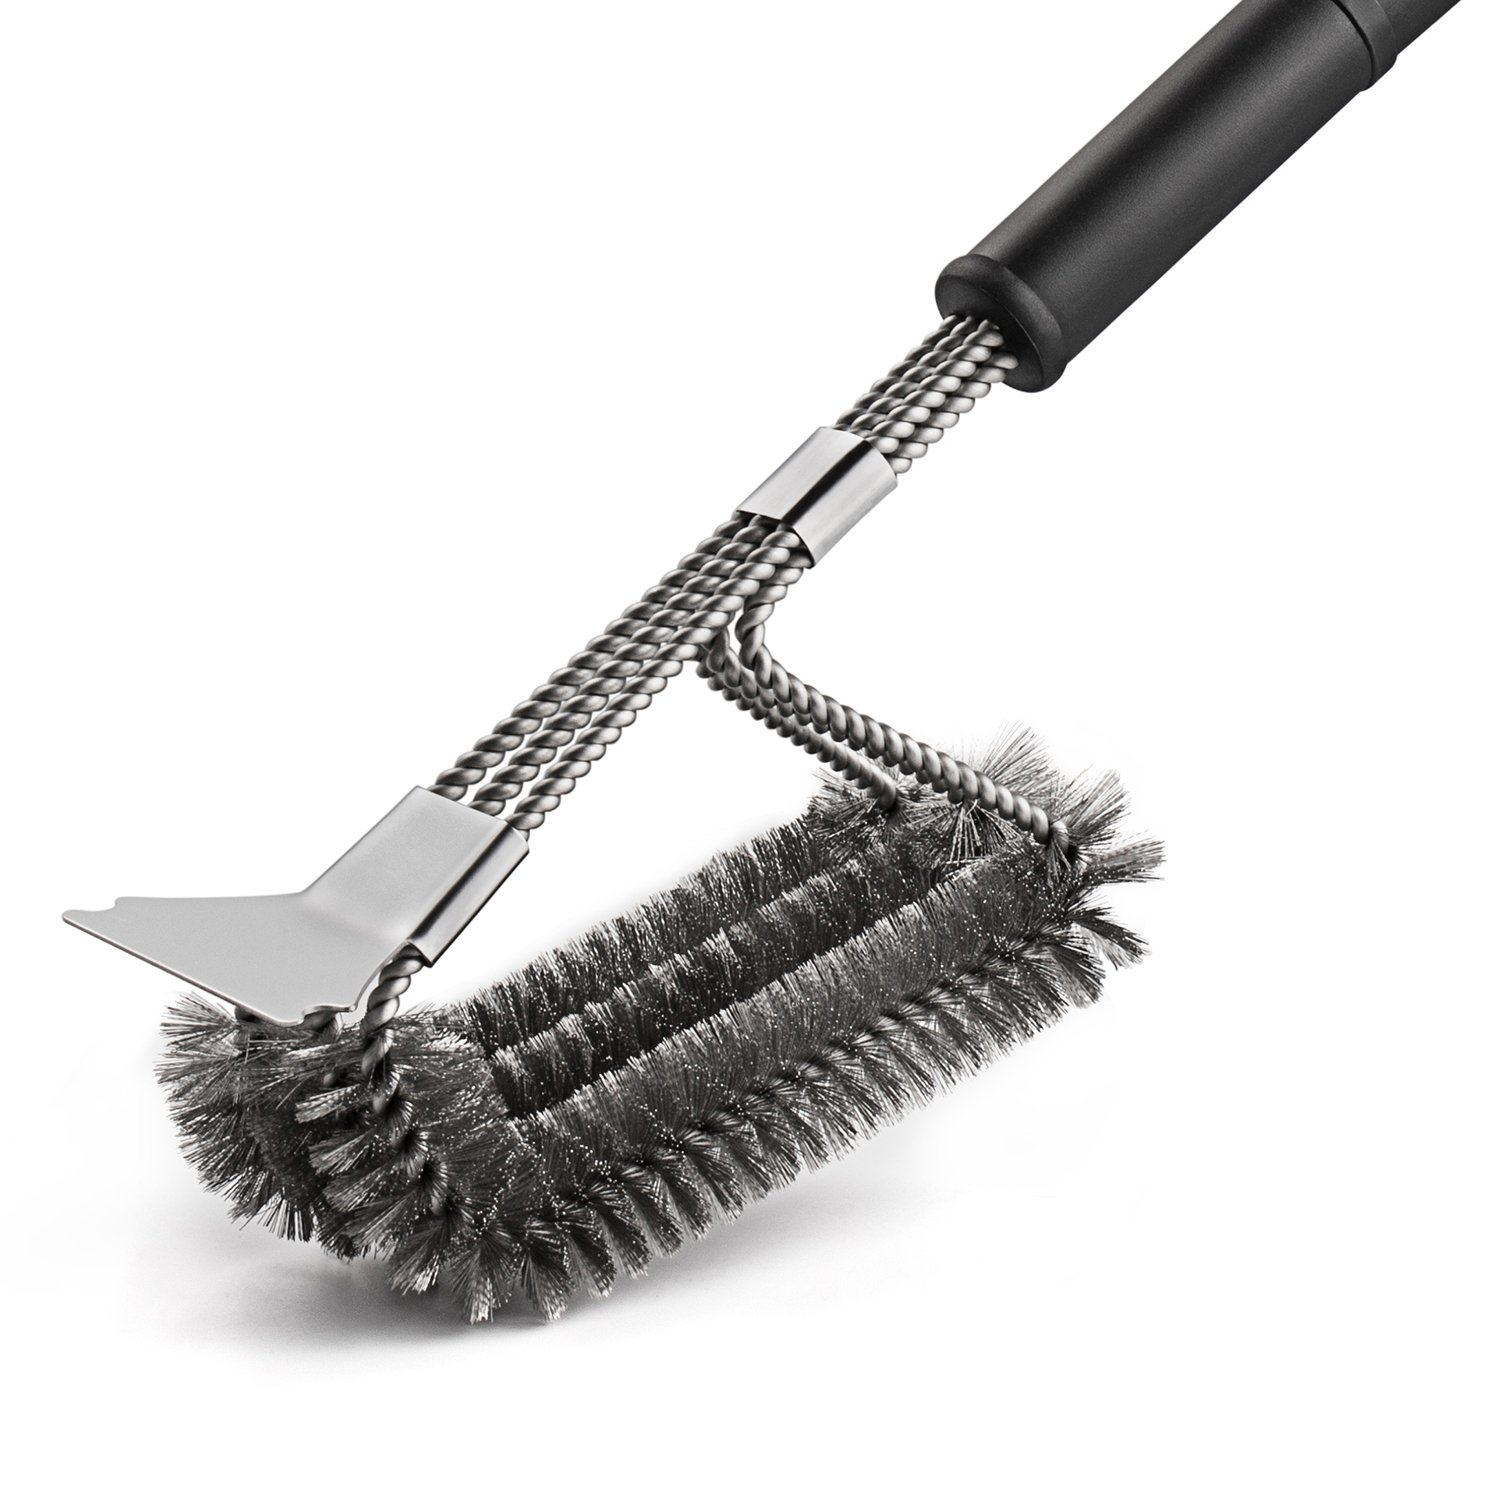 Deppon Grill Brush and Scraper for Grill, 18 Inch Stainless Steel Woven Wire 3 in 1 Grilling Cleaning Brush for Weber Gas/Charcoal Grill (Silver)